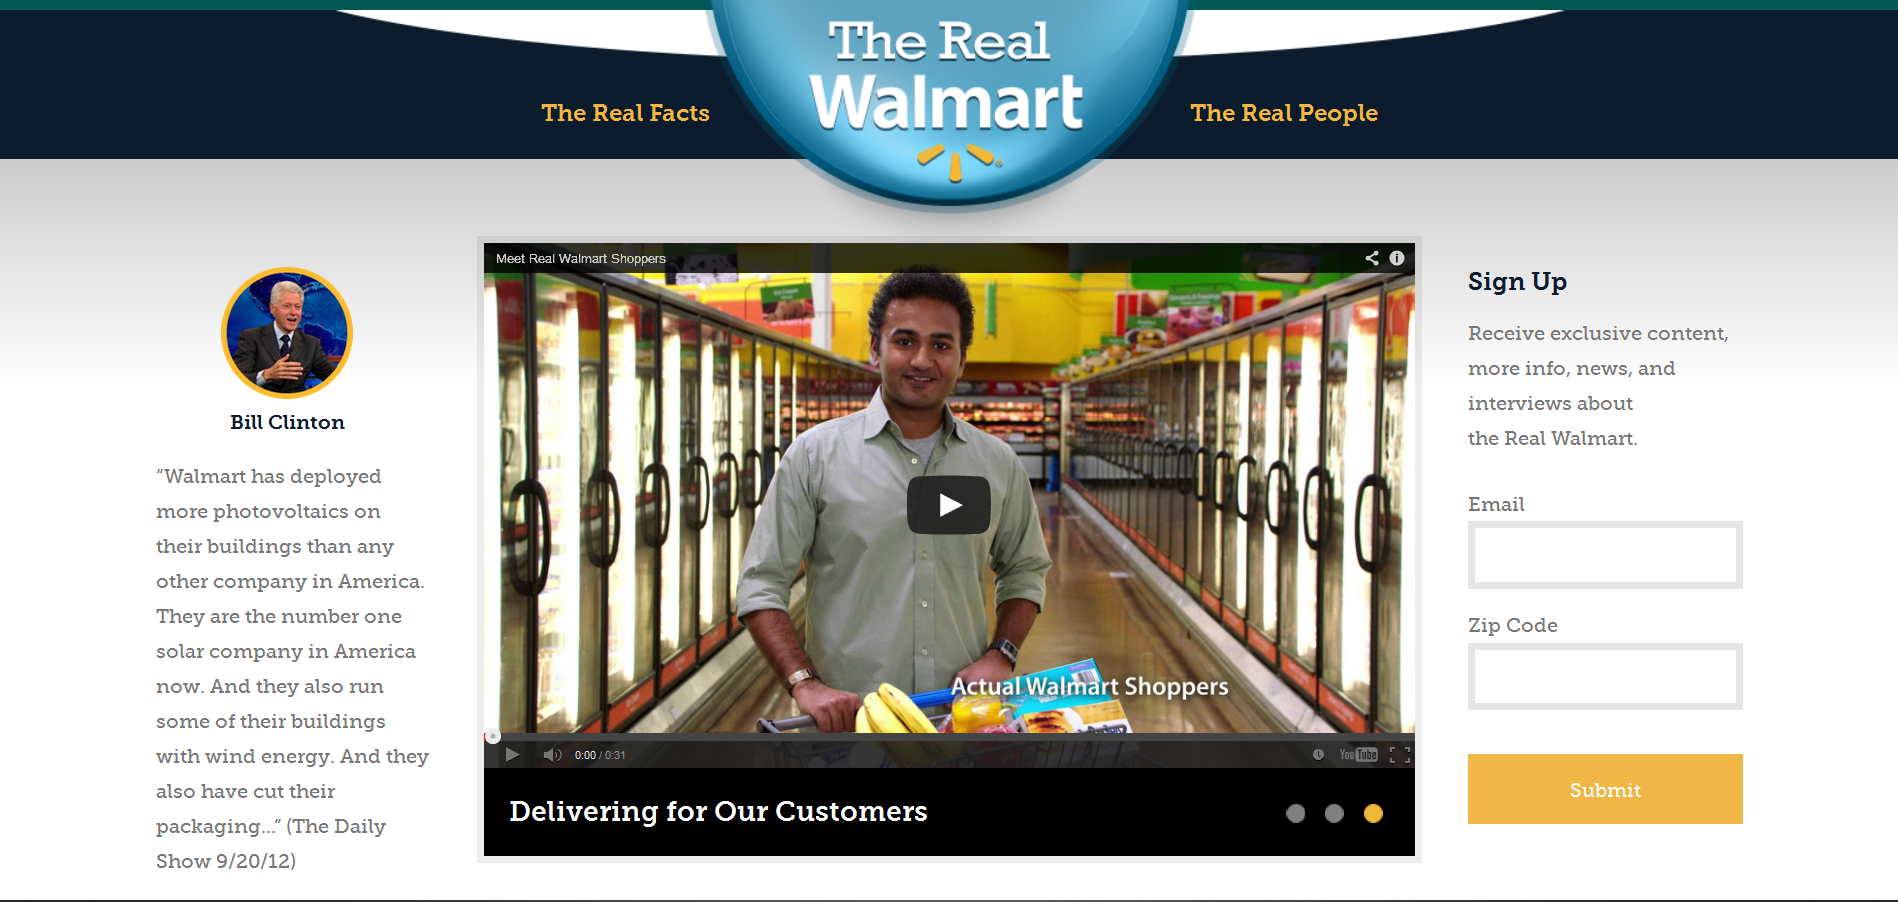 Learn About The Real Walmart